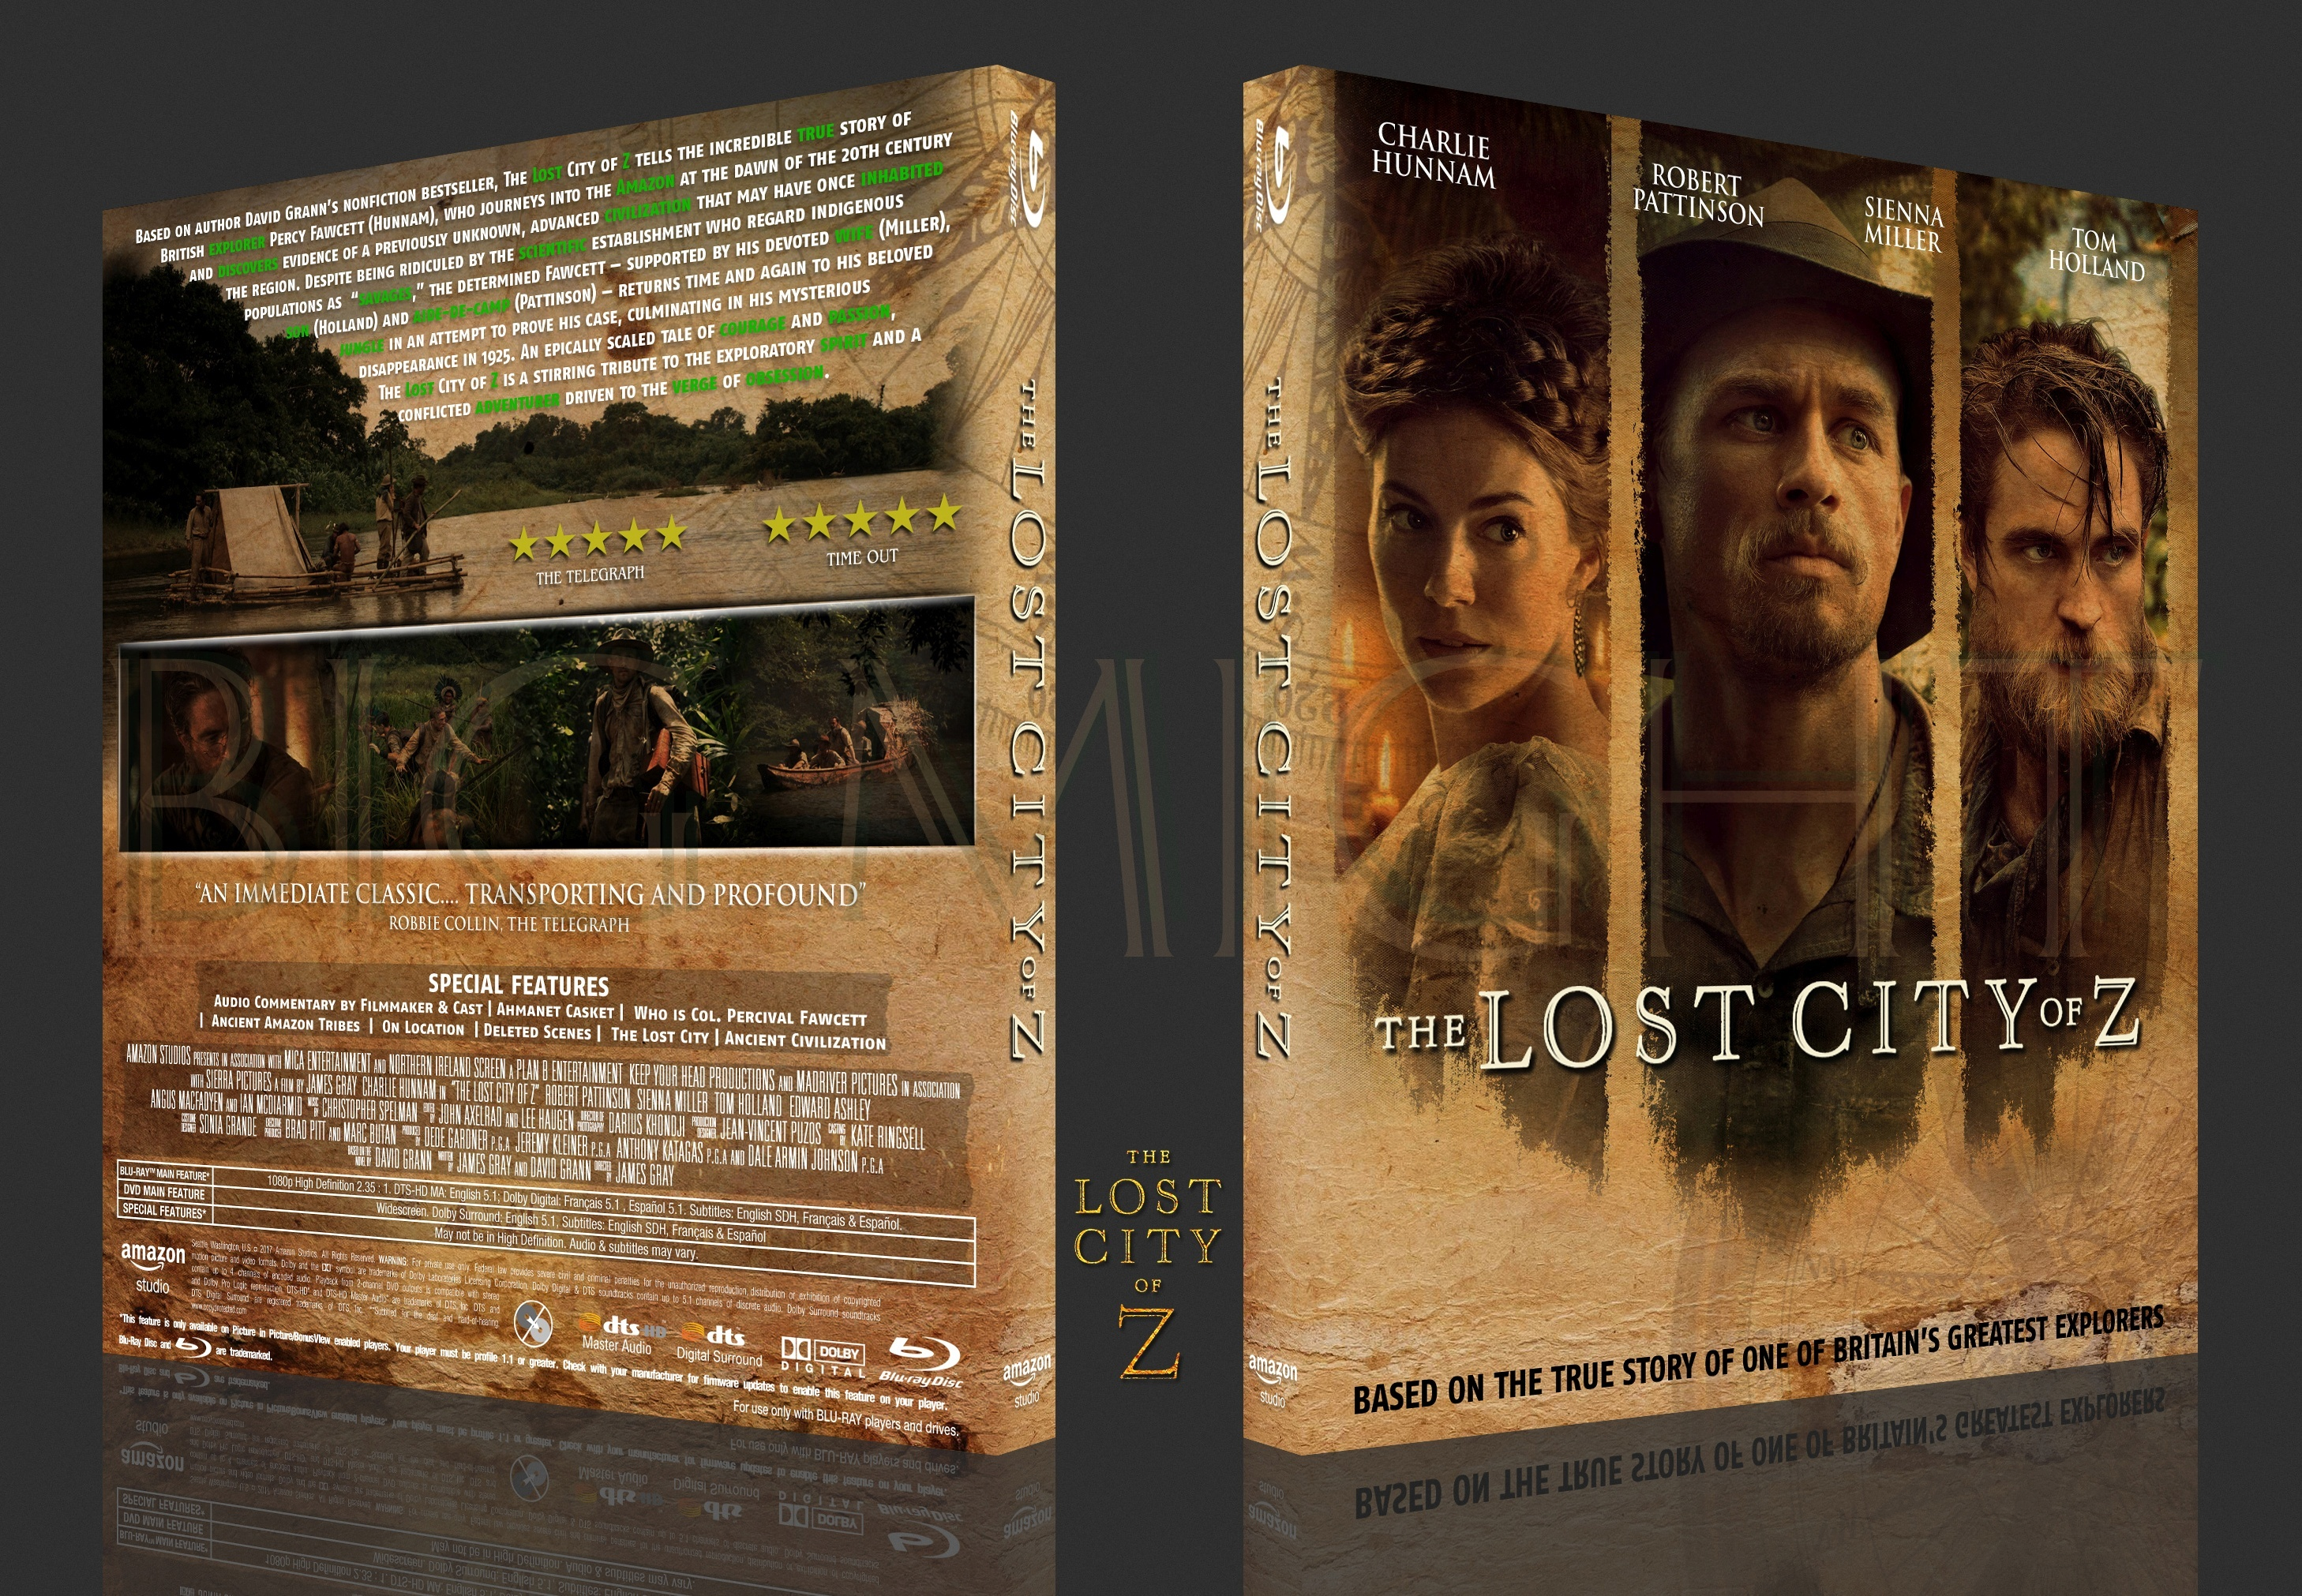 The Lost City of Z box cover